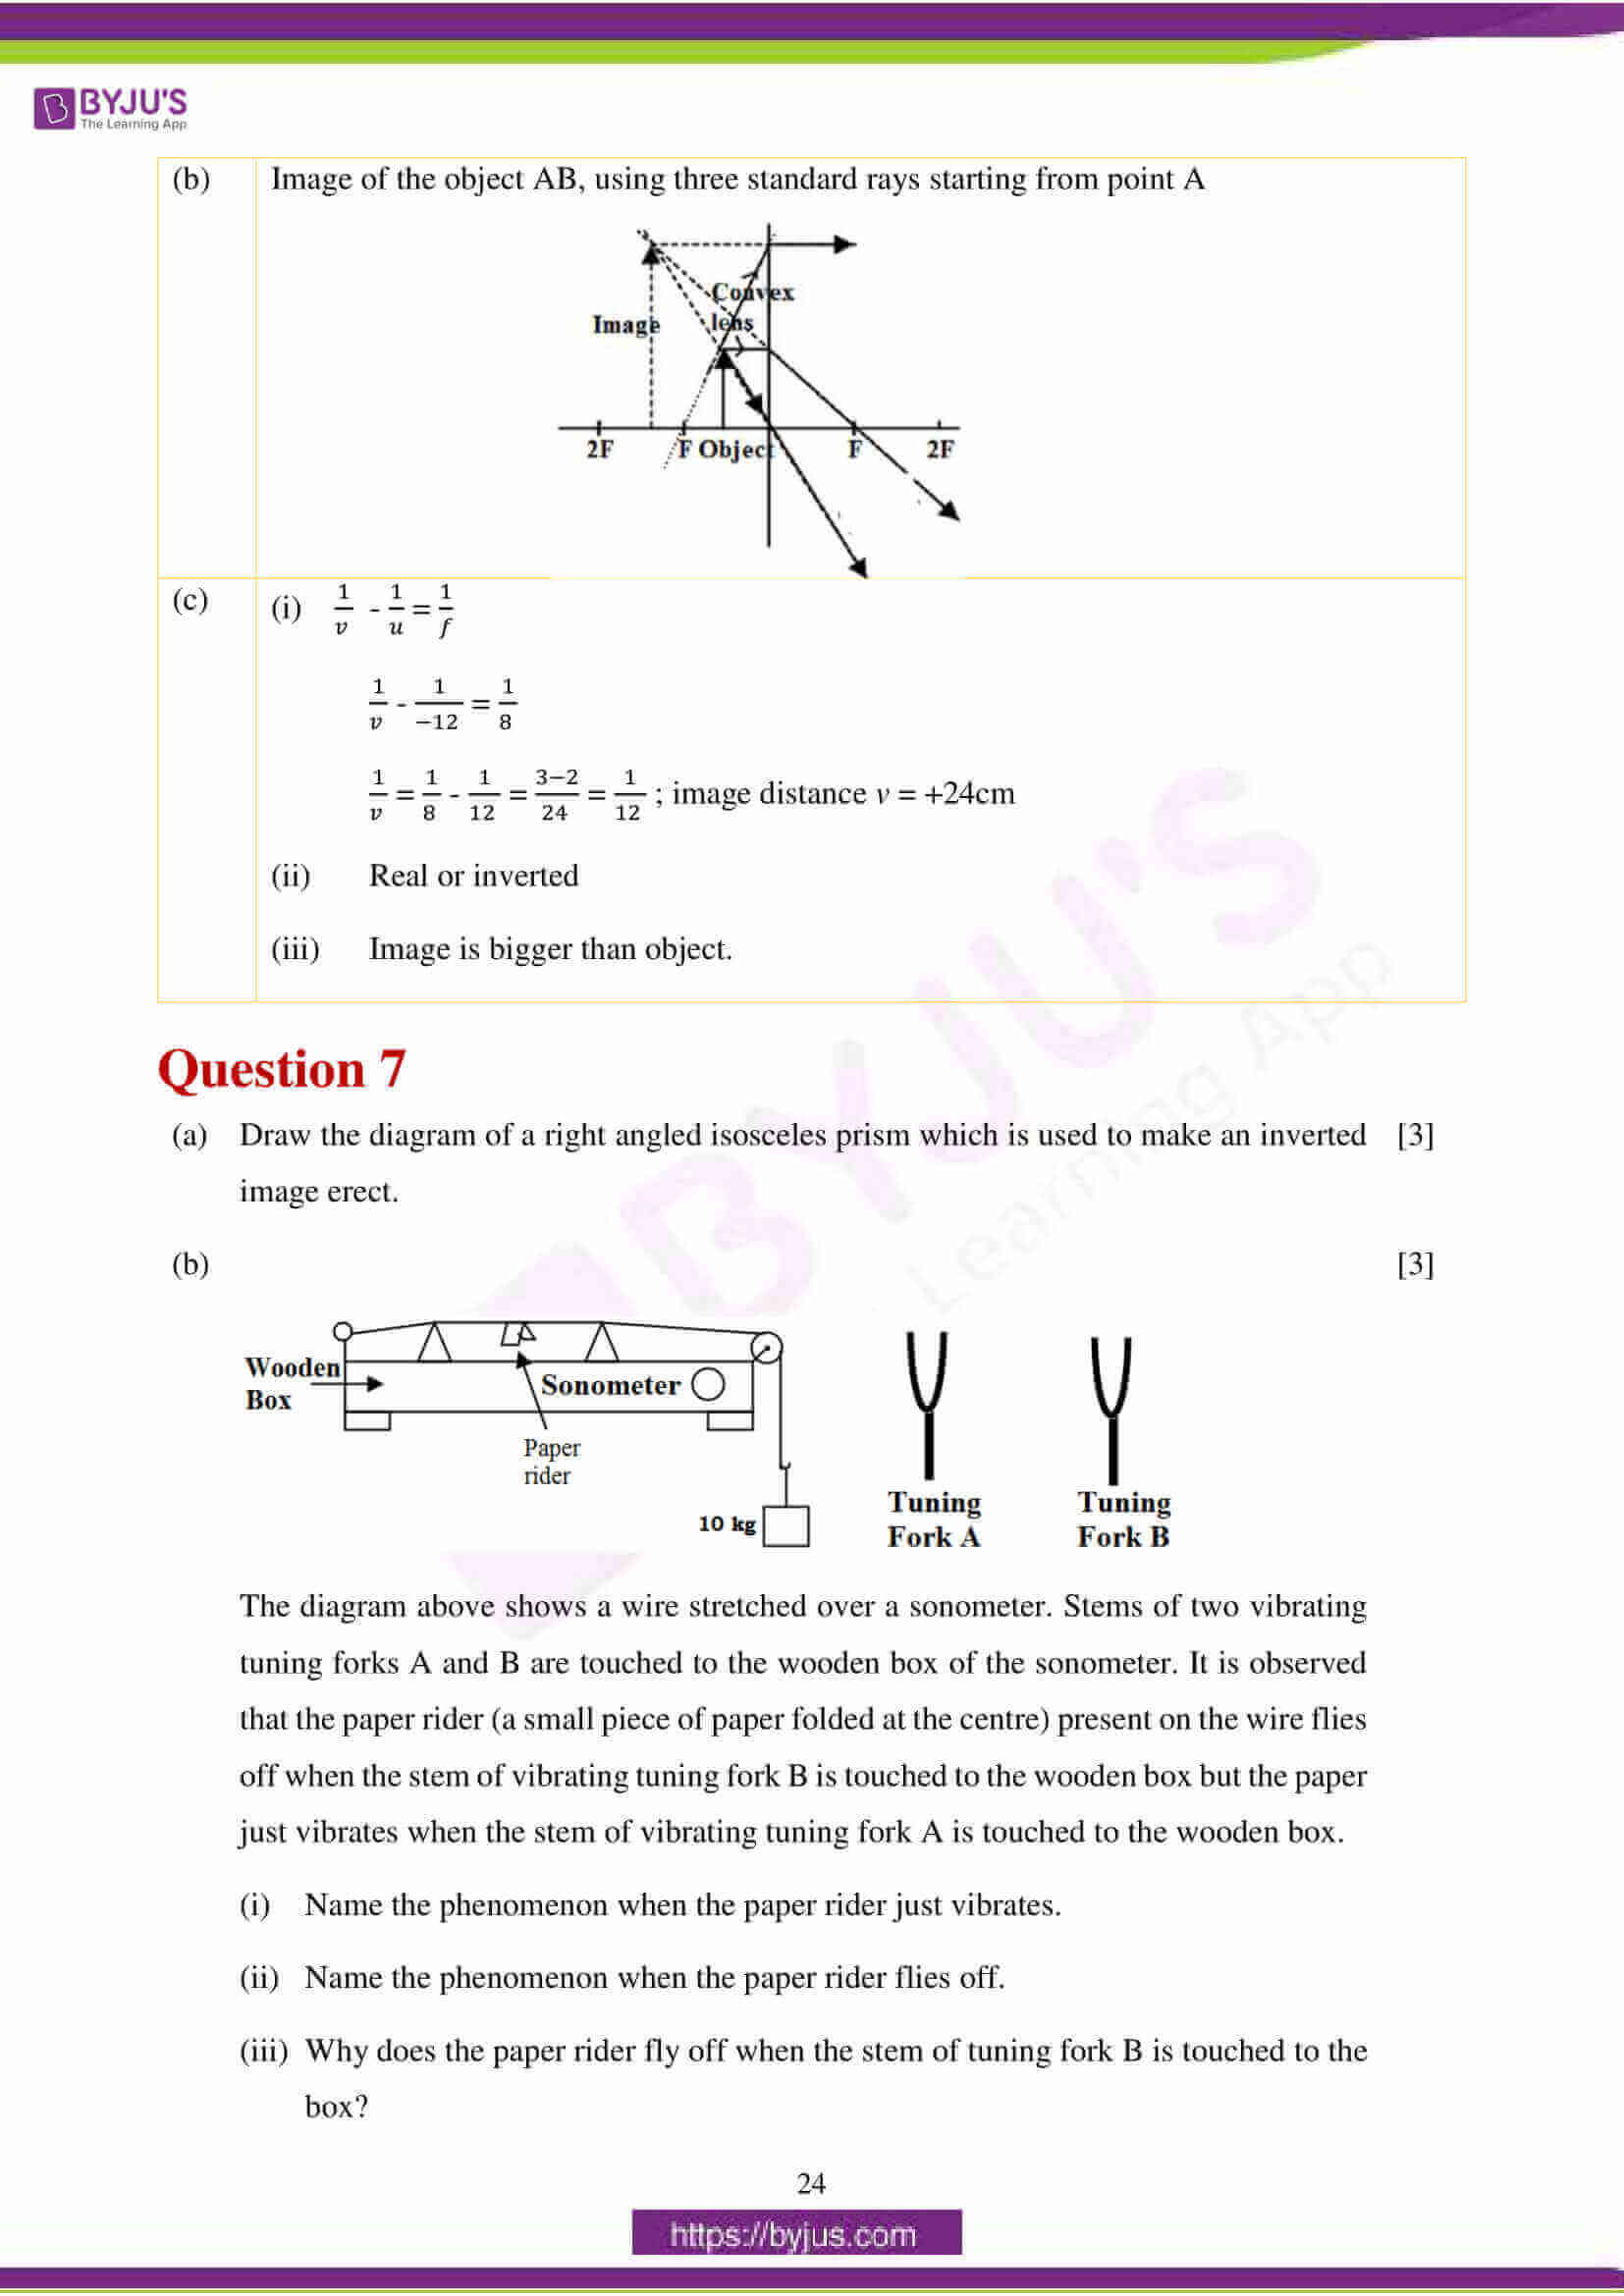 icse class 10 physics question paper solution 2018 15